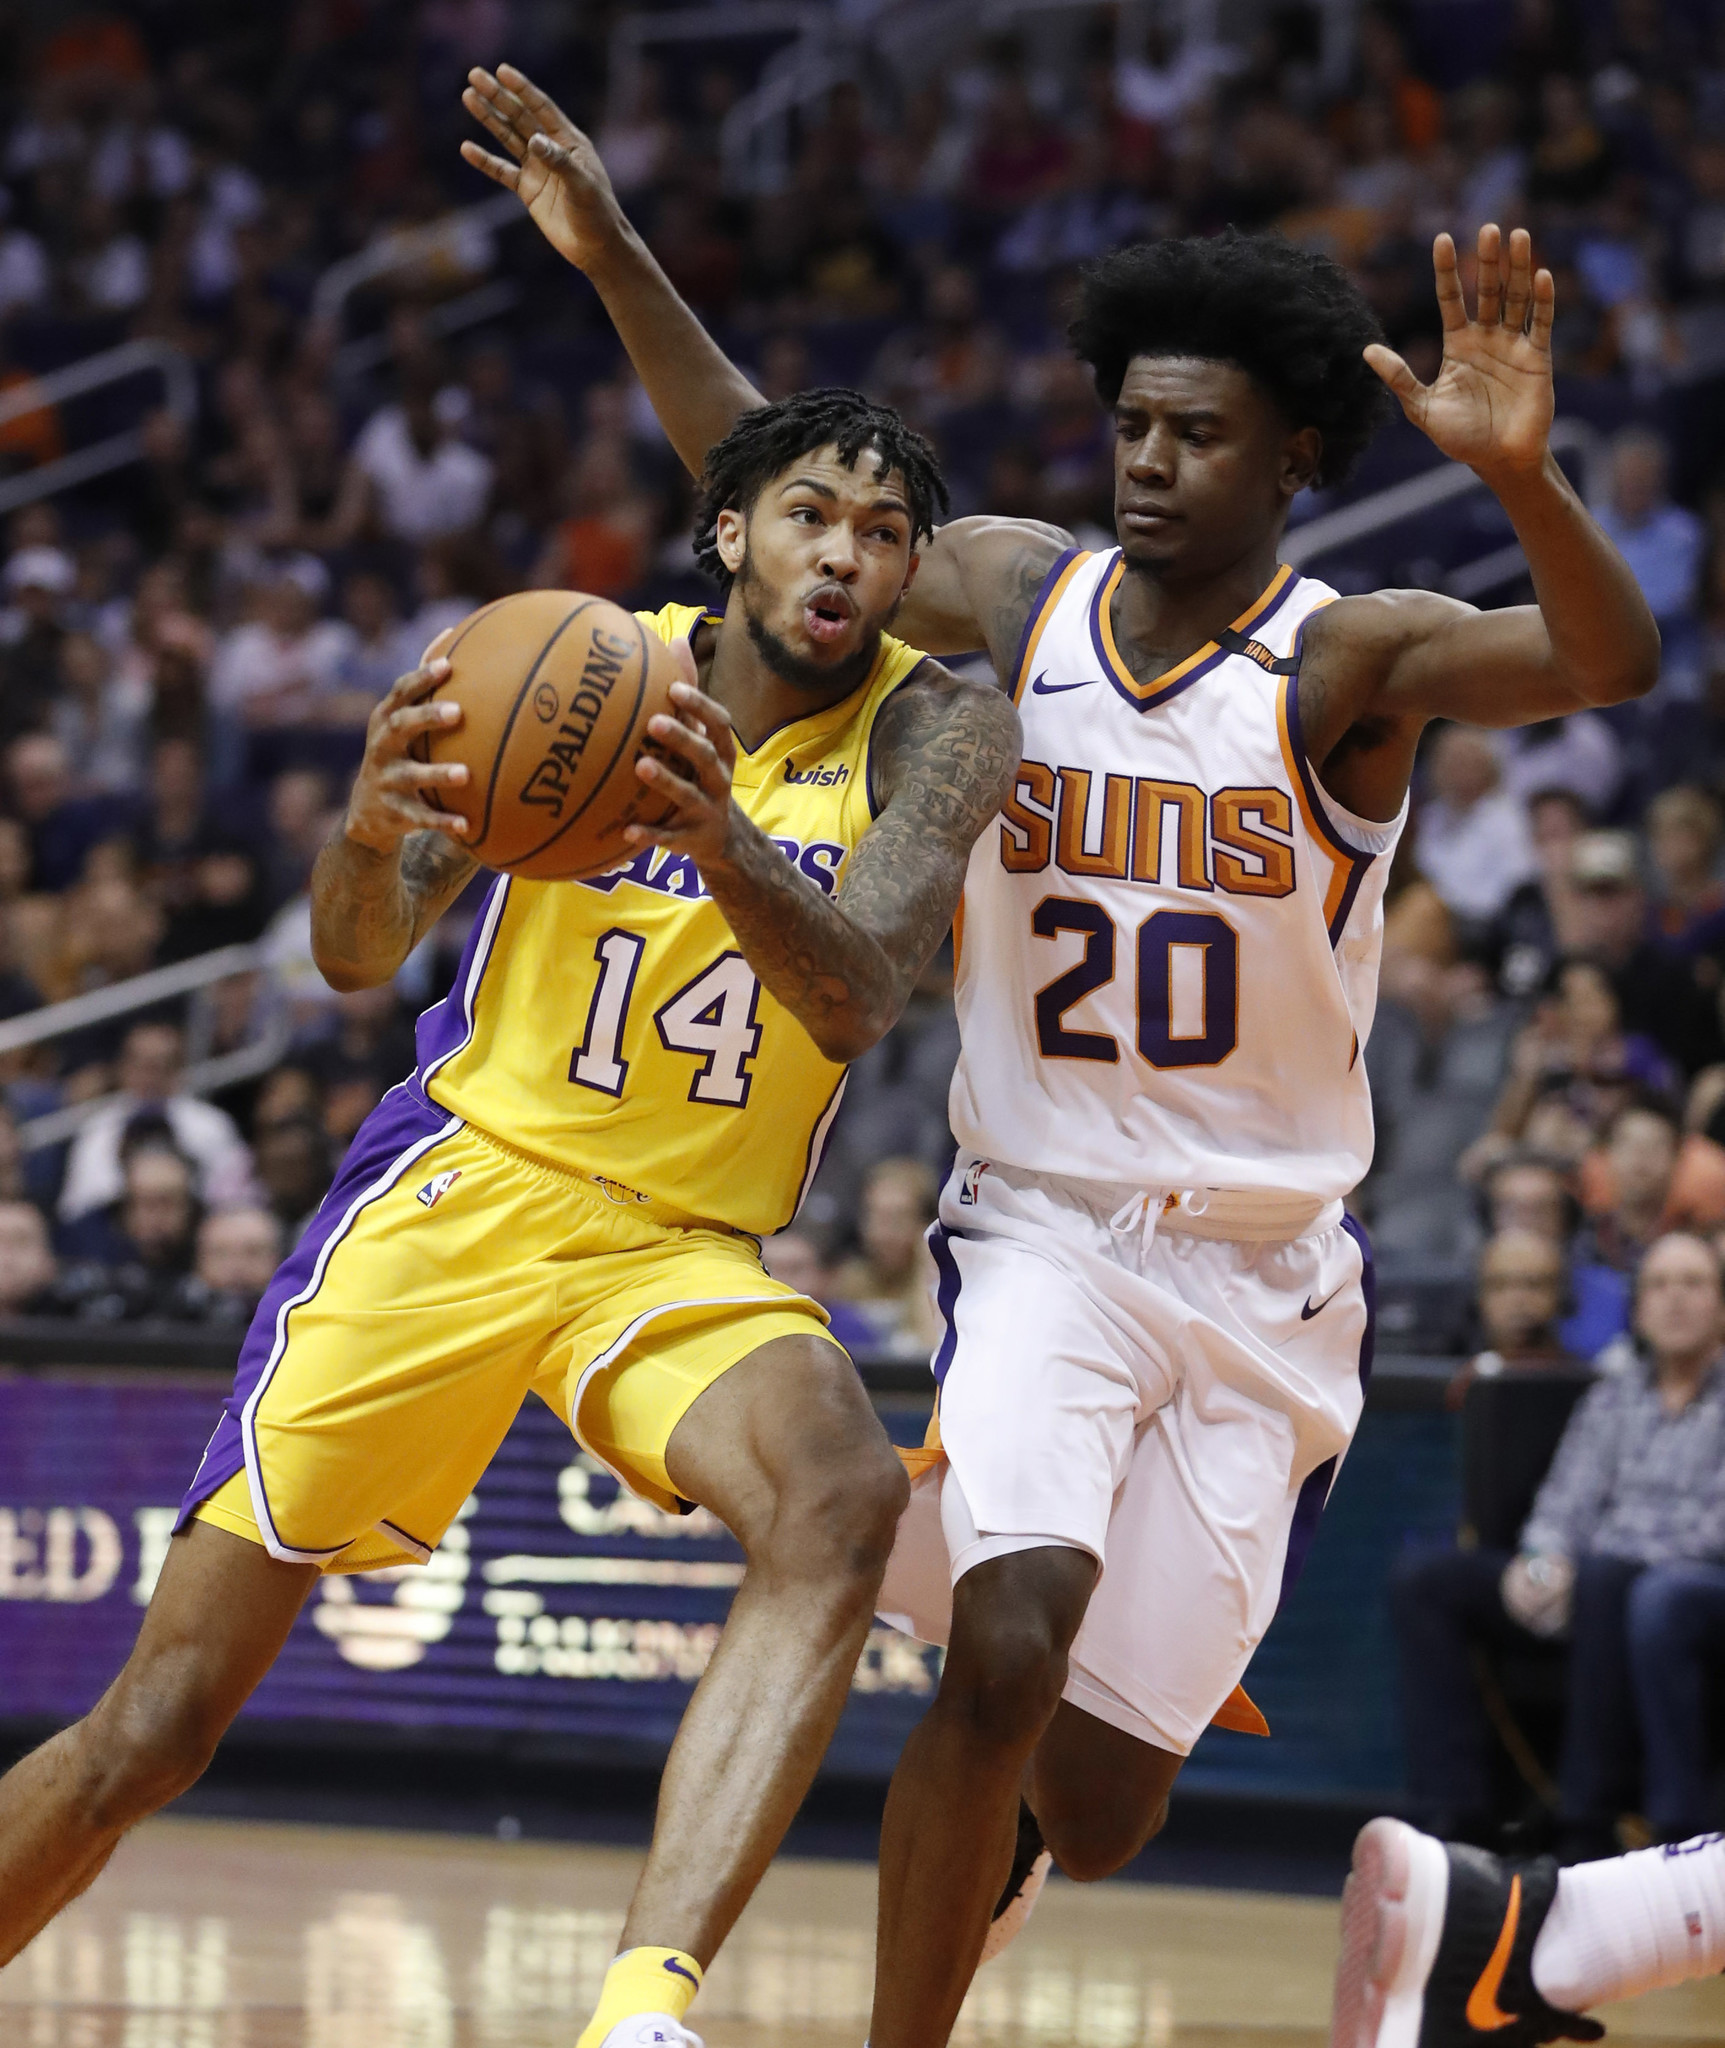 La-sp-lakers-report-20171020